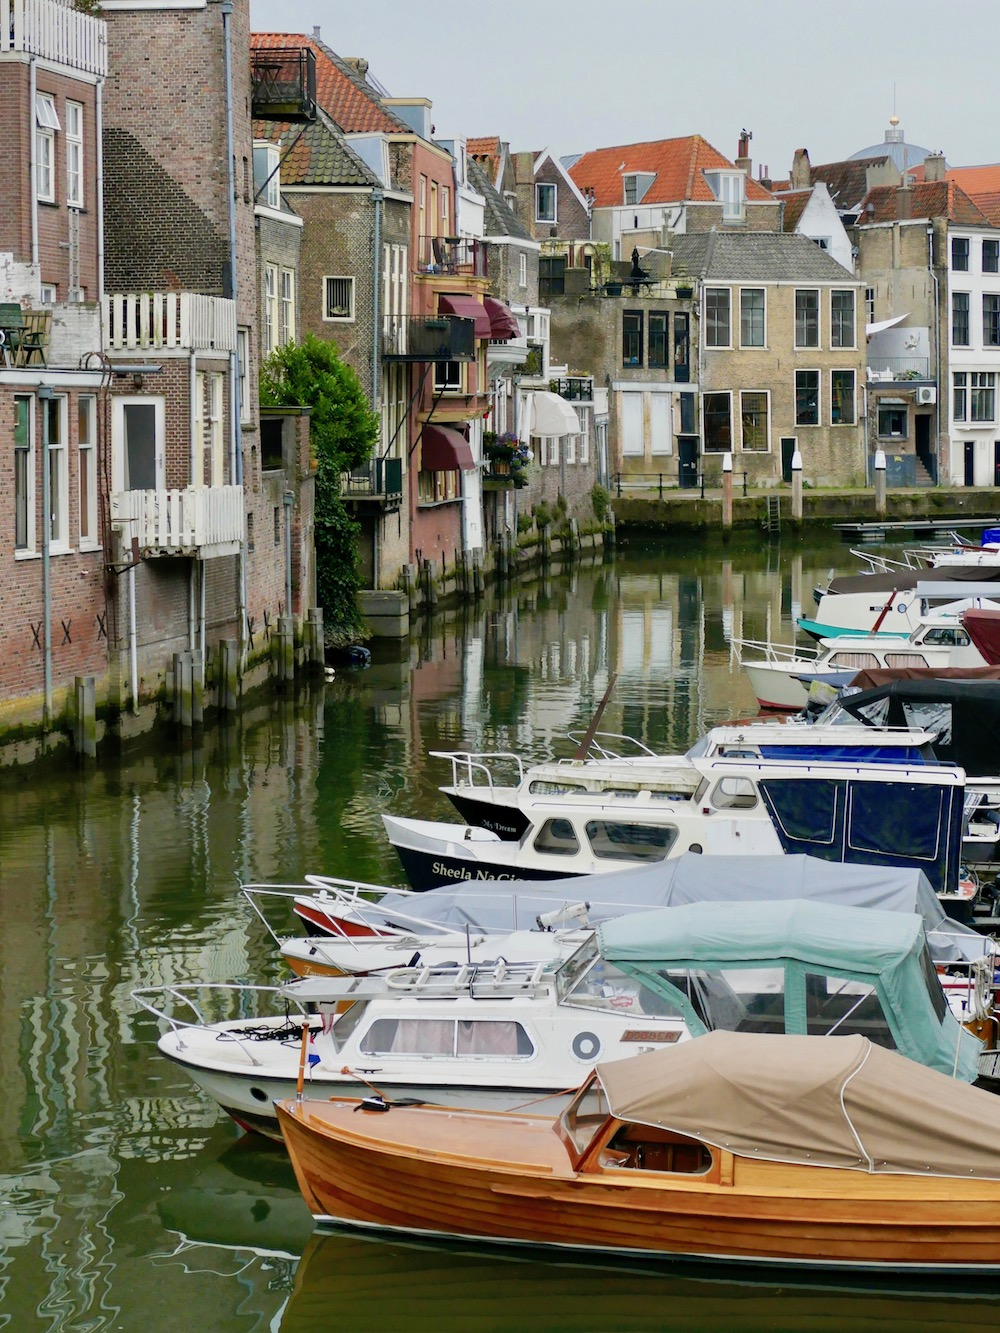 Canals and canal houses in Dordrecht |curlytraveller.com